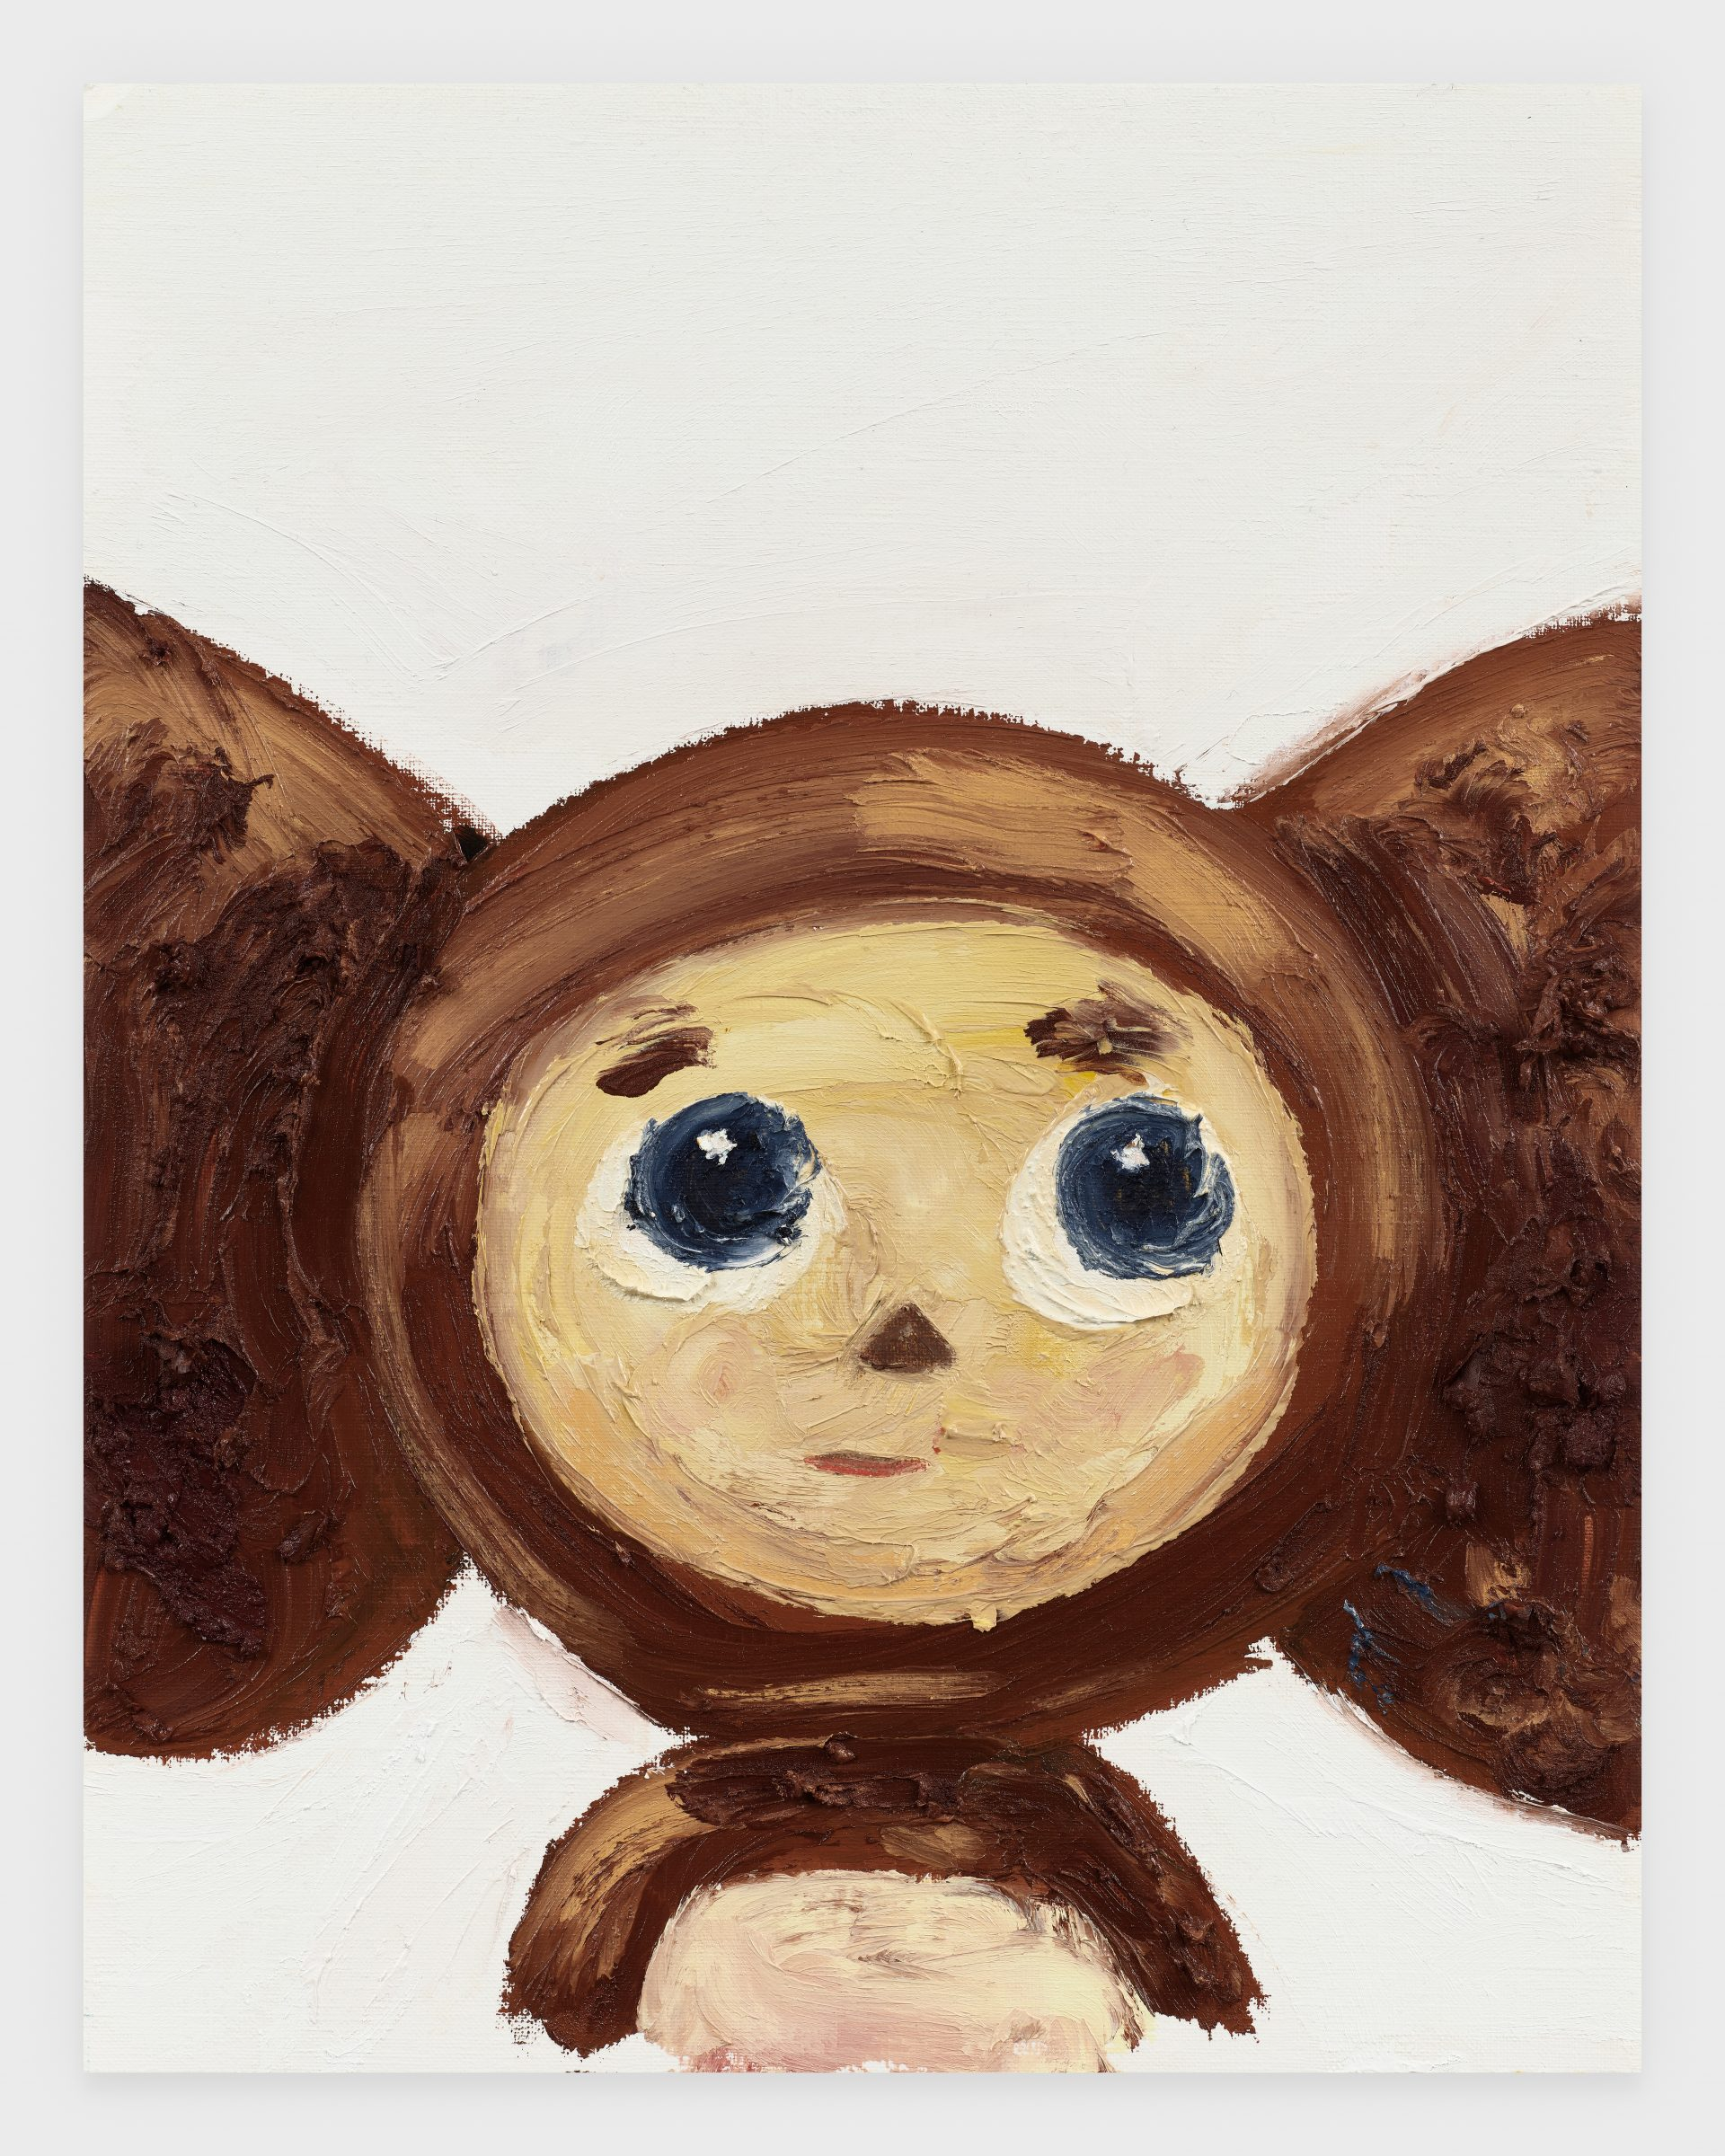 Cheburashka, 2020, Oil stick on archival paper, 11 x 14 inches